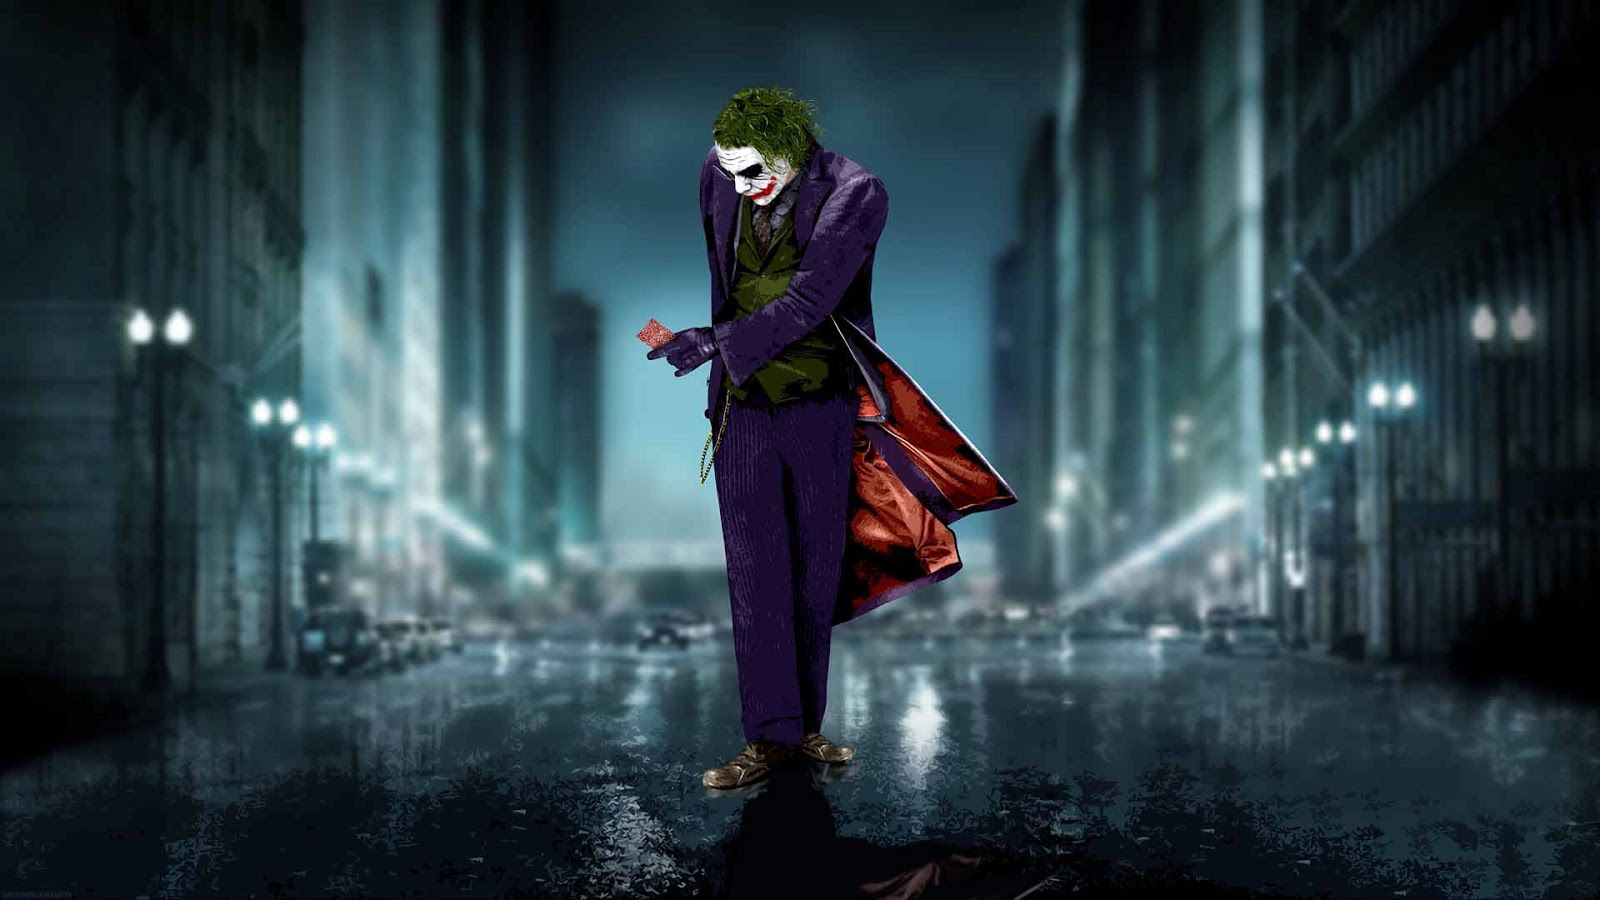 Joker Wallpaper HD - WallpaperSafari